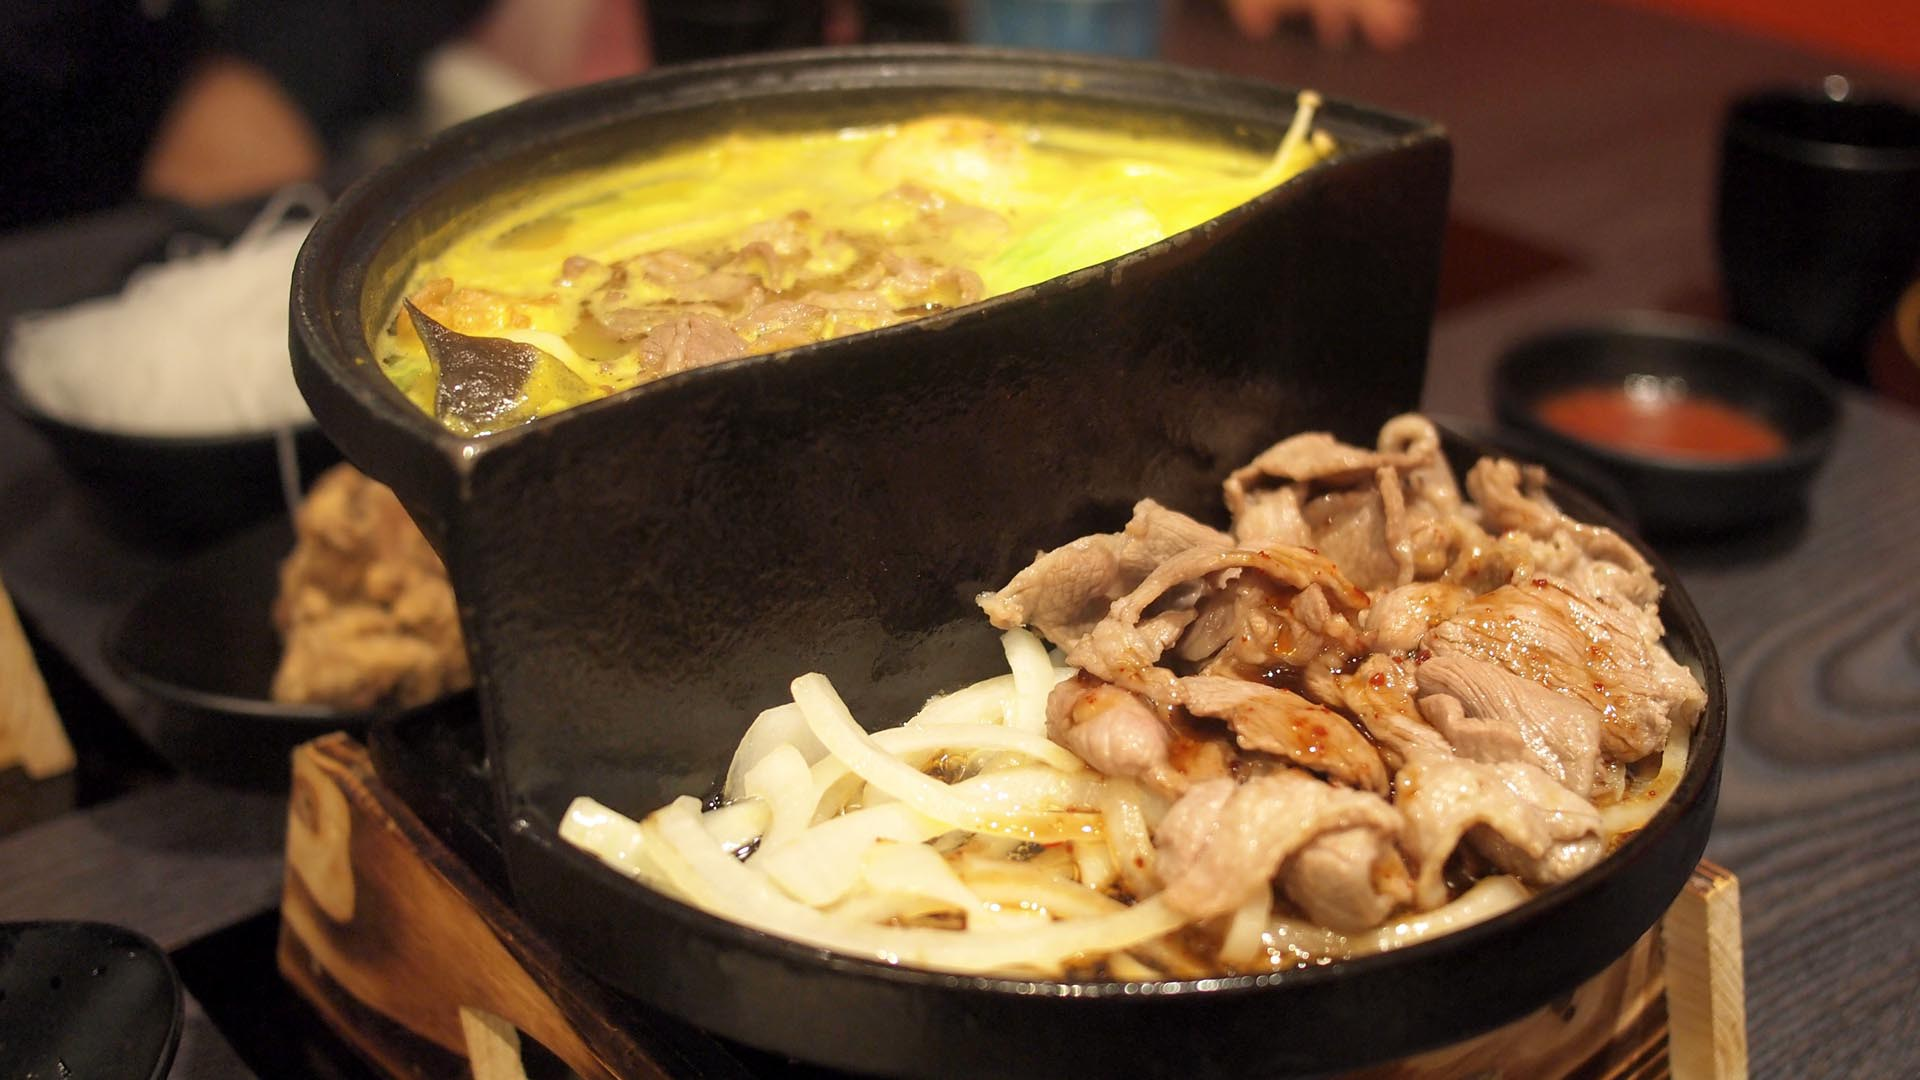 Pot Belly Mini Hotpot, Image credit: Michael Kwan